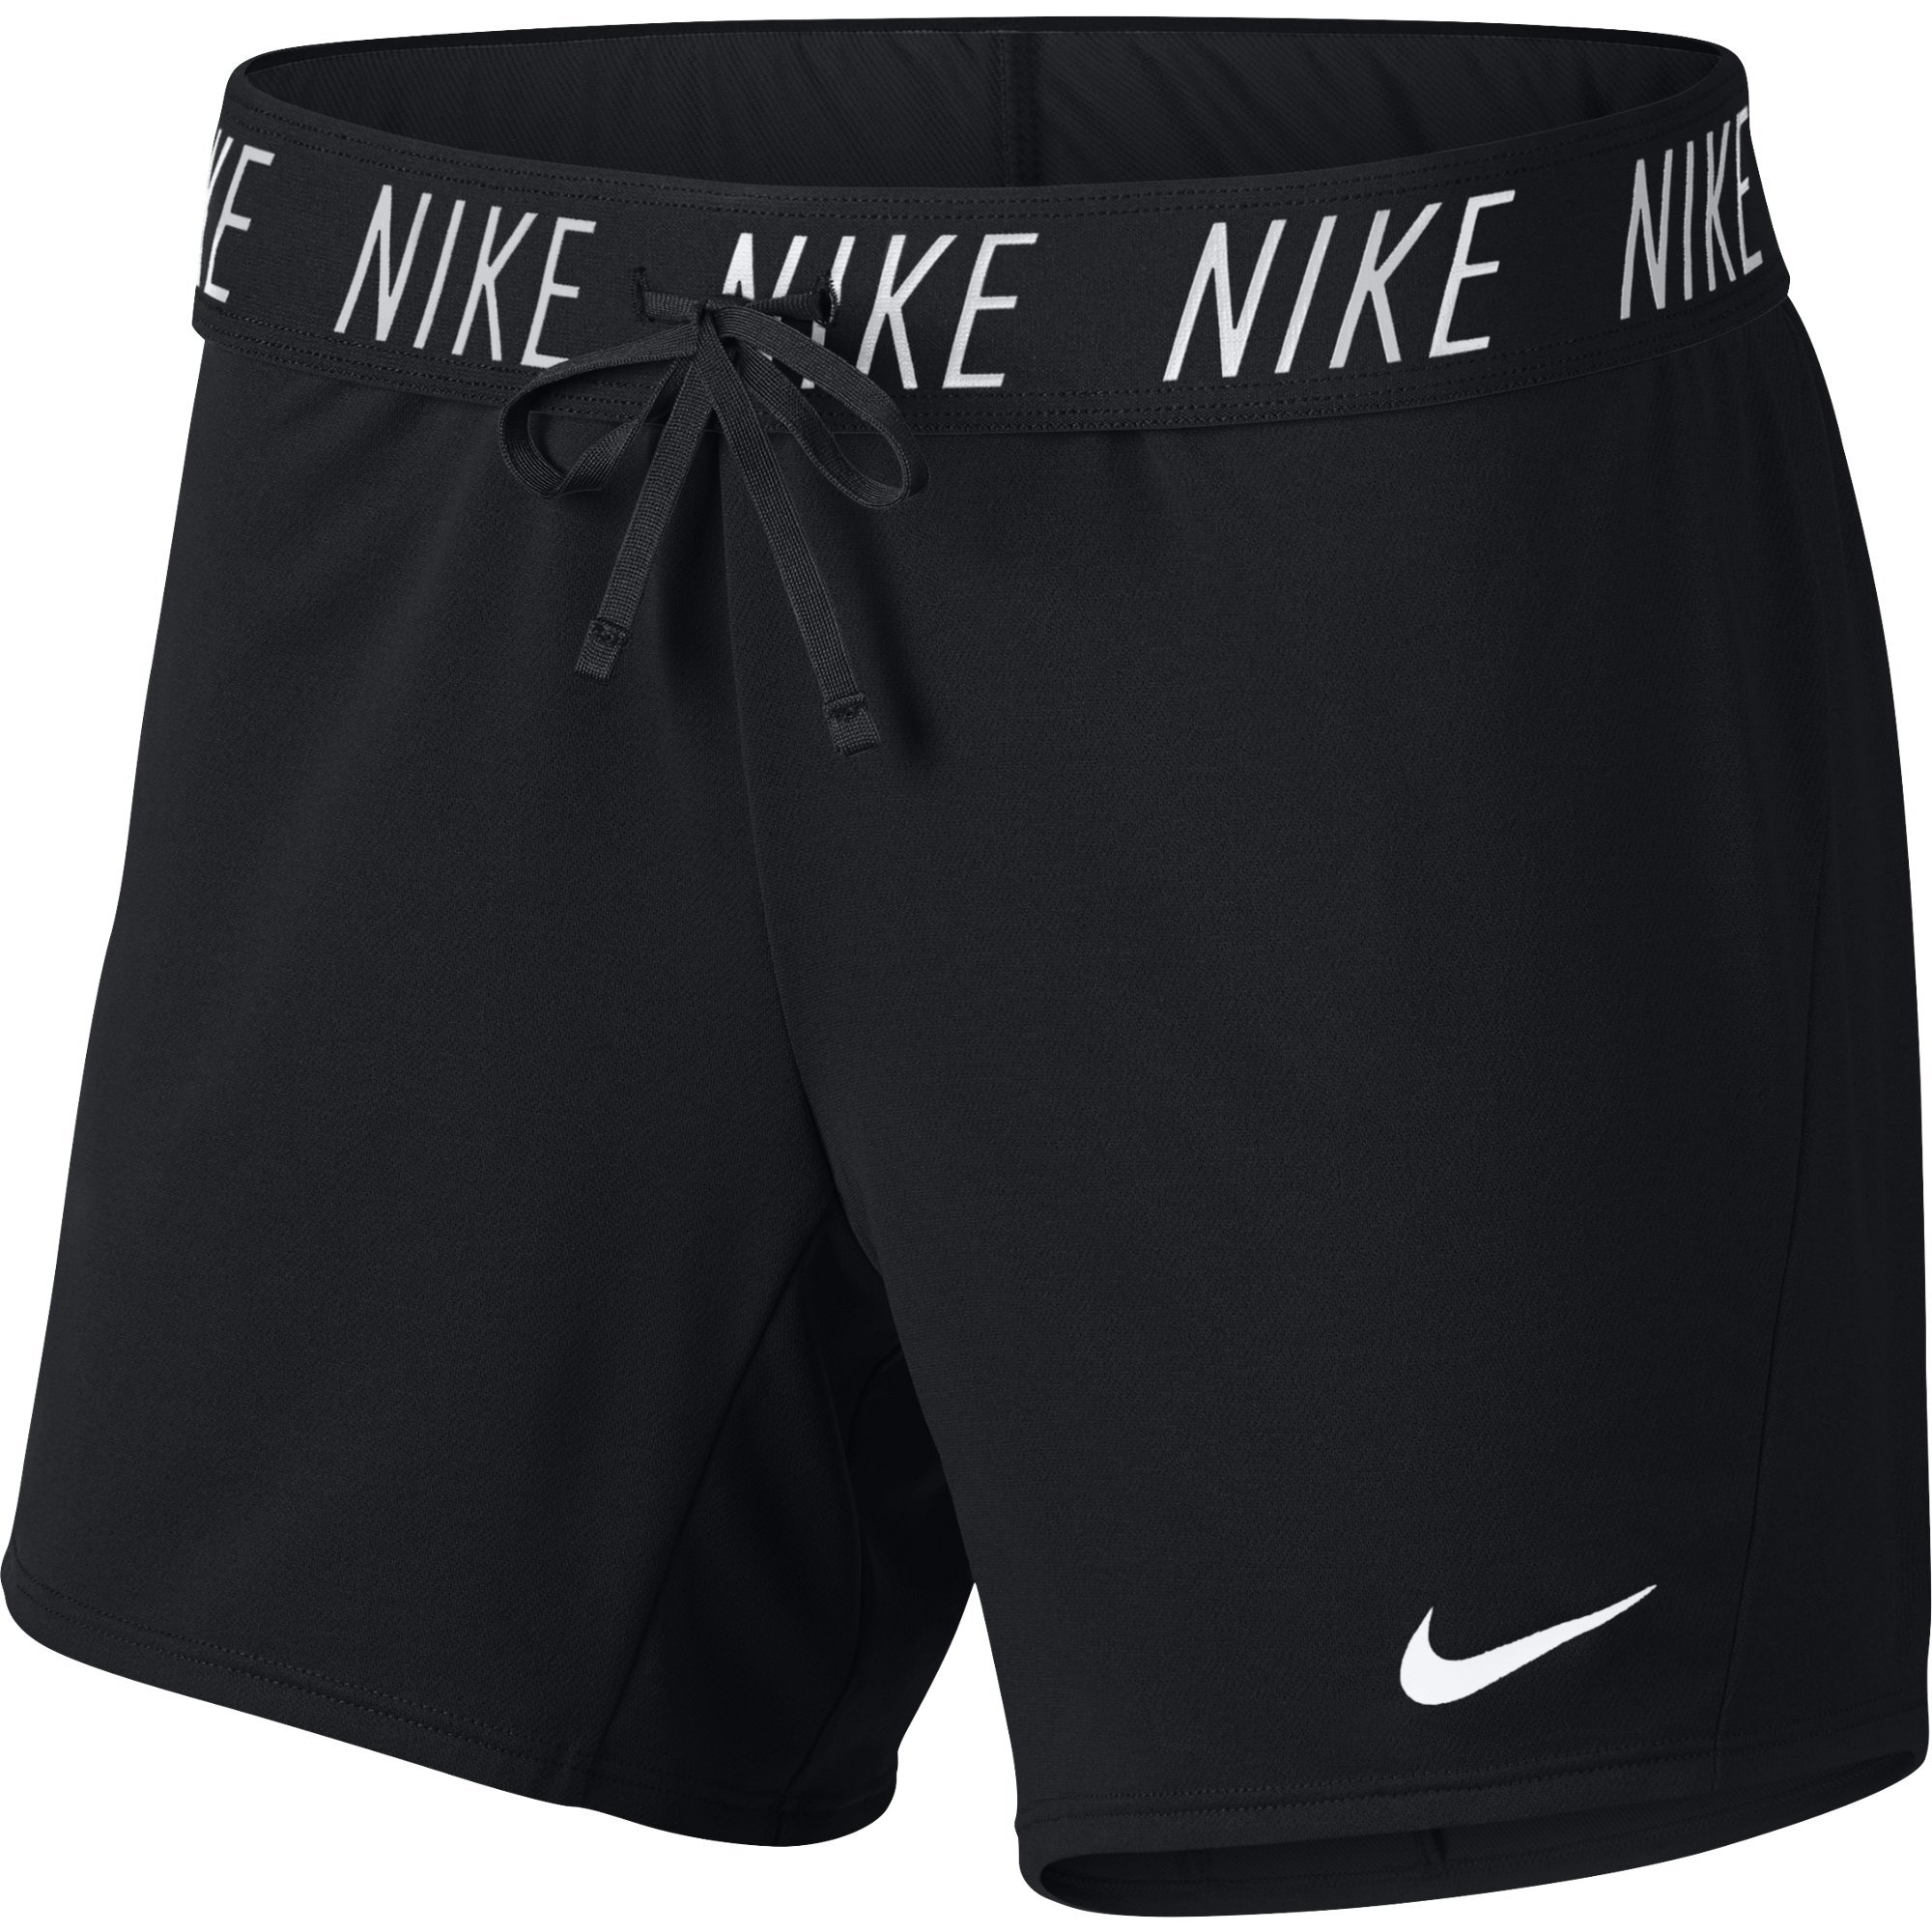 NIKE Women's Dry Attack Trainer 5'' Athletic Shorts, Black/White, X-Small